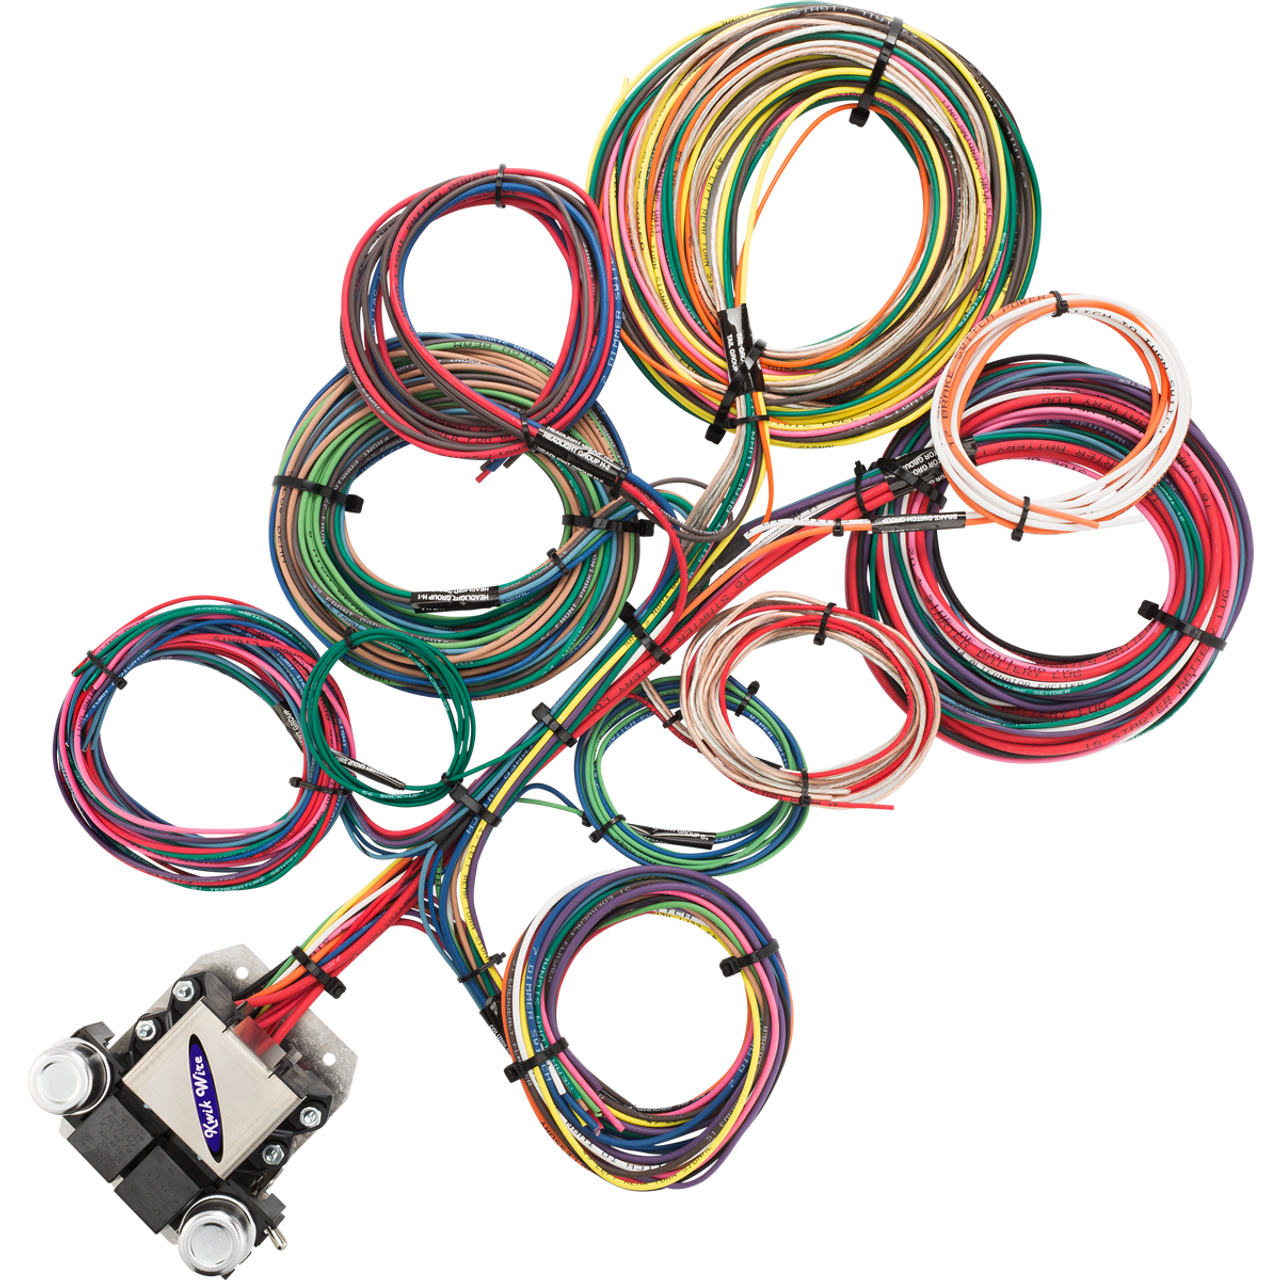 Kwik Wiring Kits Schematic Diagrams Car Audio Supplies 8 Circuit Wire Harness Kwikwire Com Electrify Your Ride